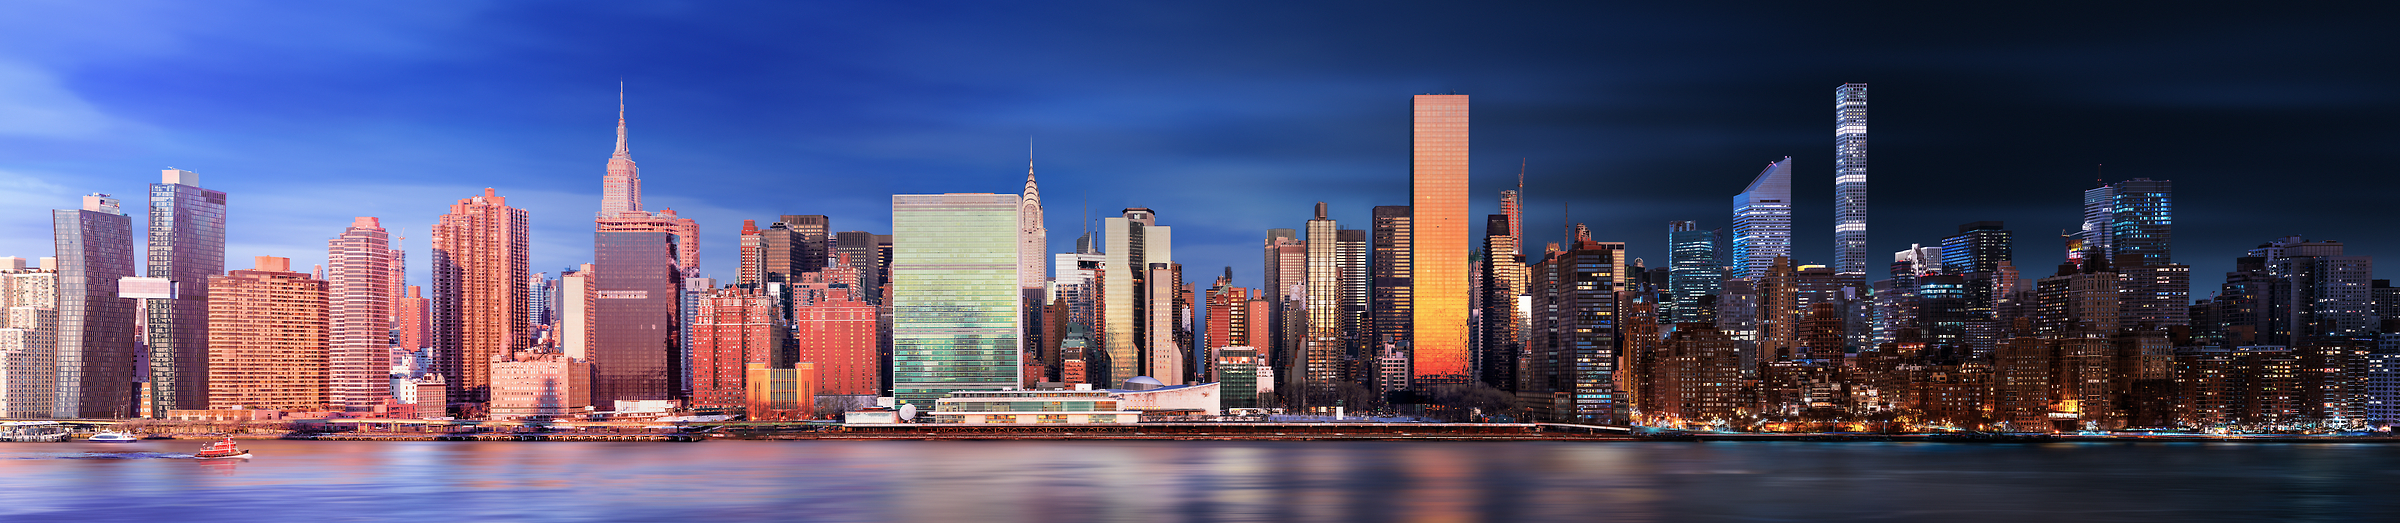 A very high resolution photograph of the New York City skyline; VAST photo created by Dan Piech